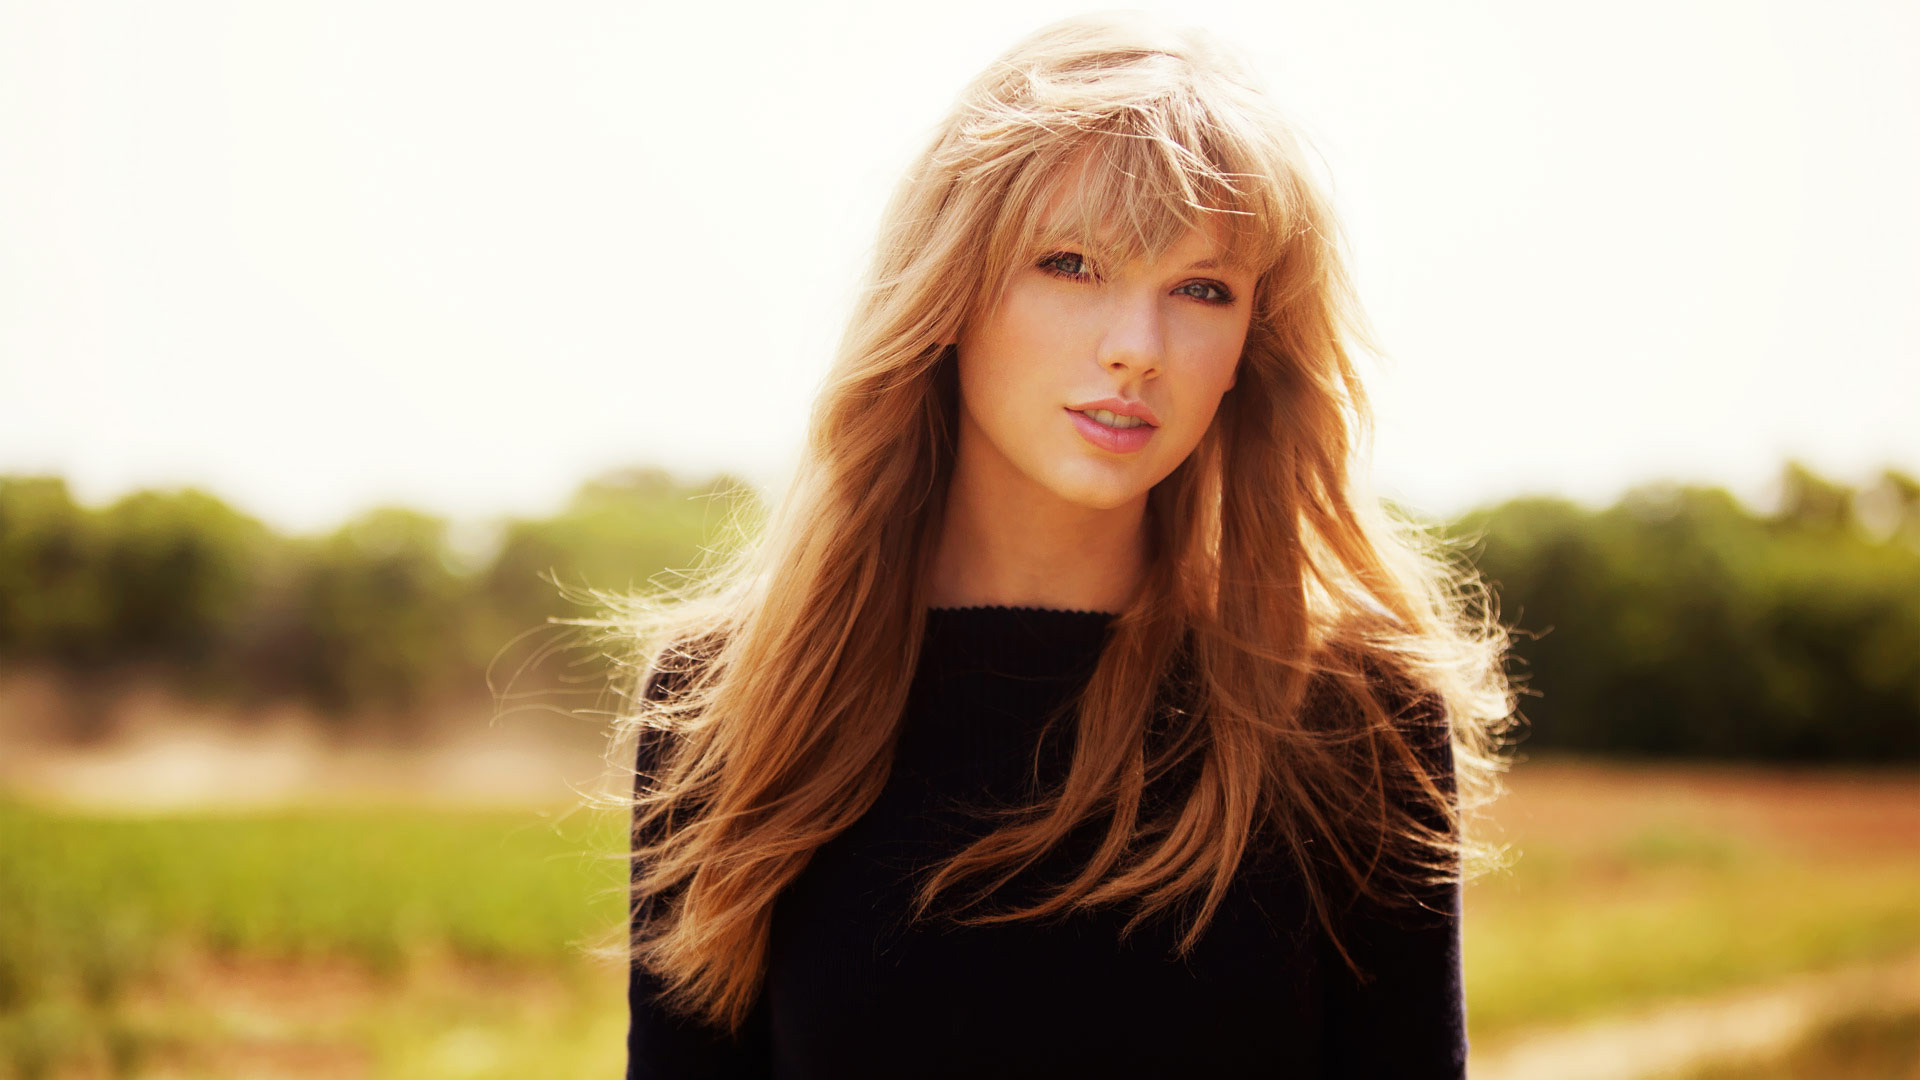 Taylor Swift Smile Wallpaper